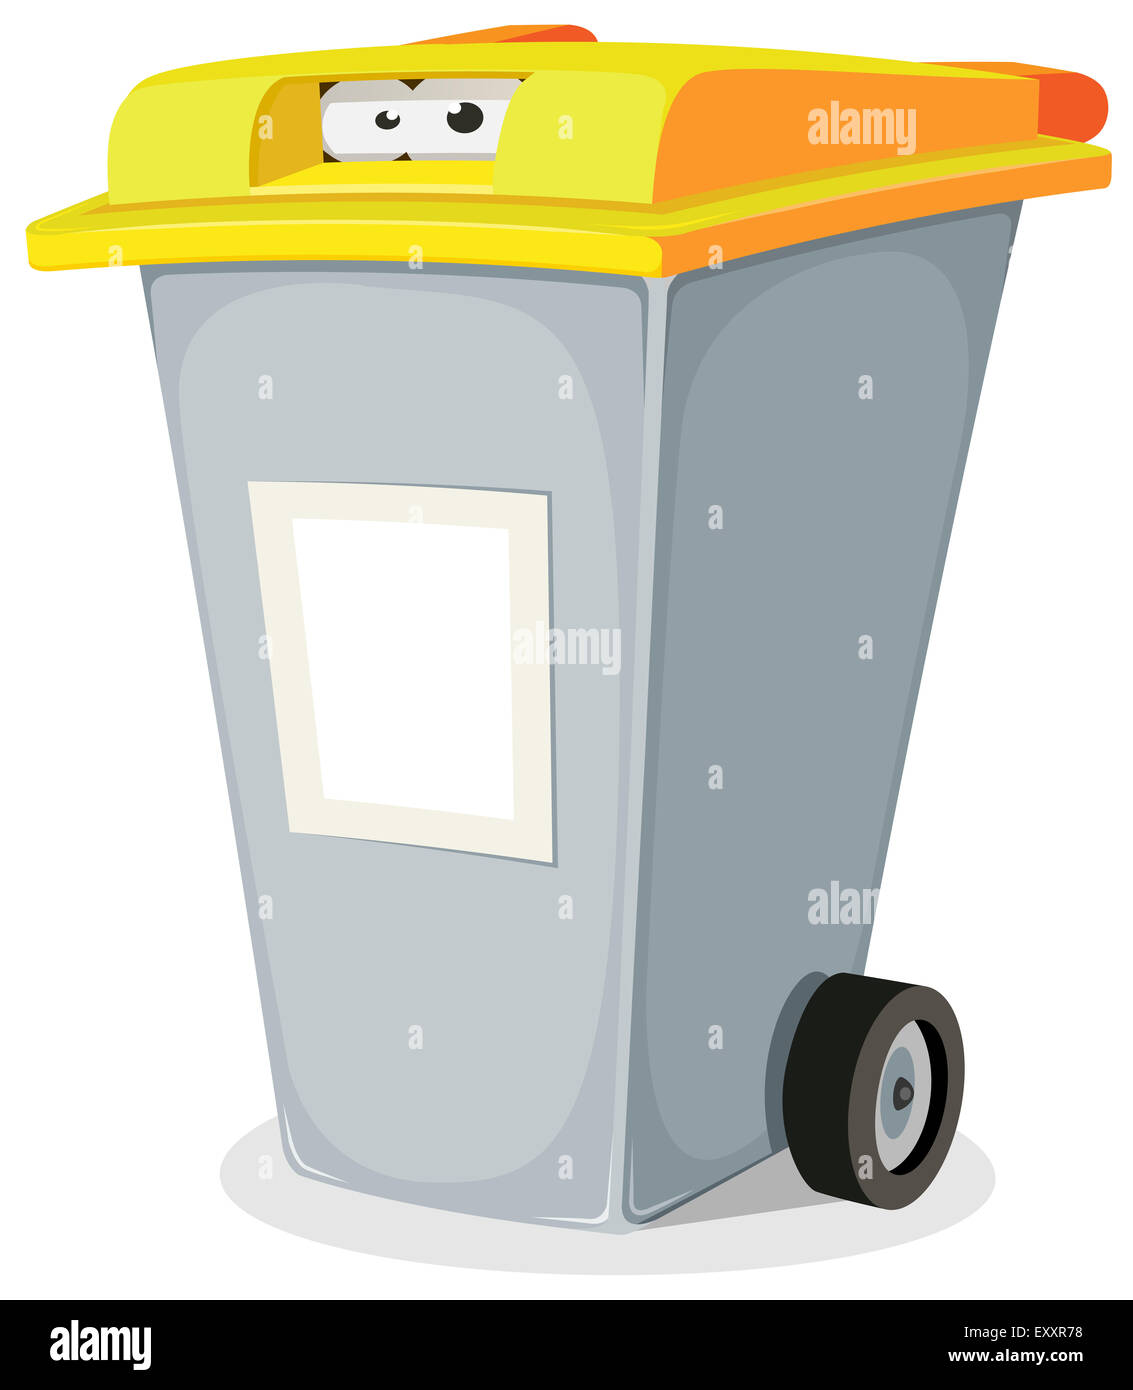 Character Dustbin Stock Photos & Character Dustbin Stock Images - Alamy